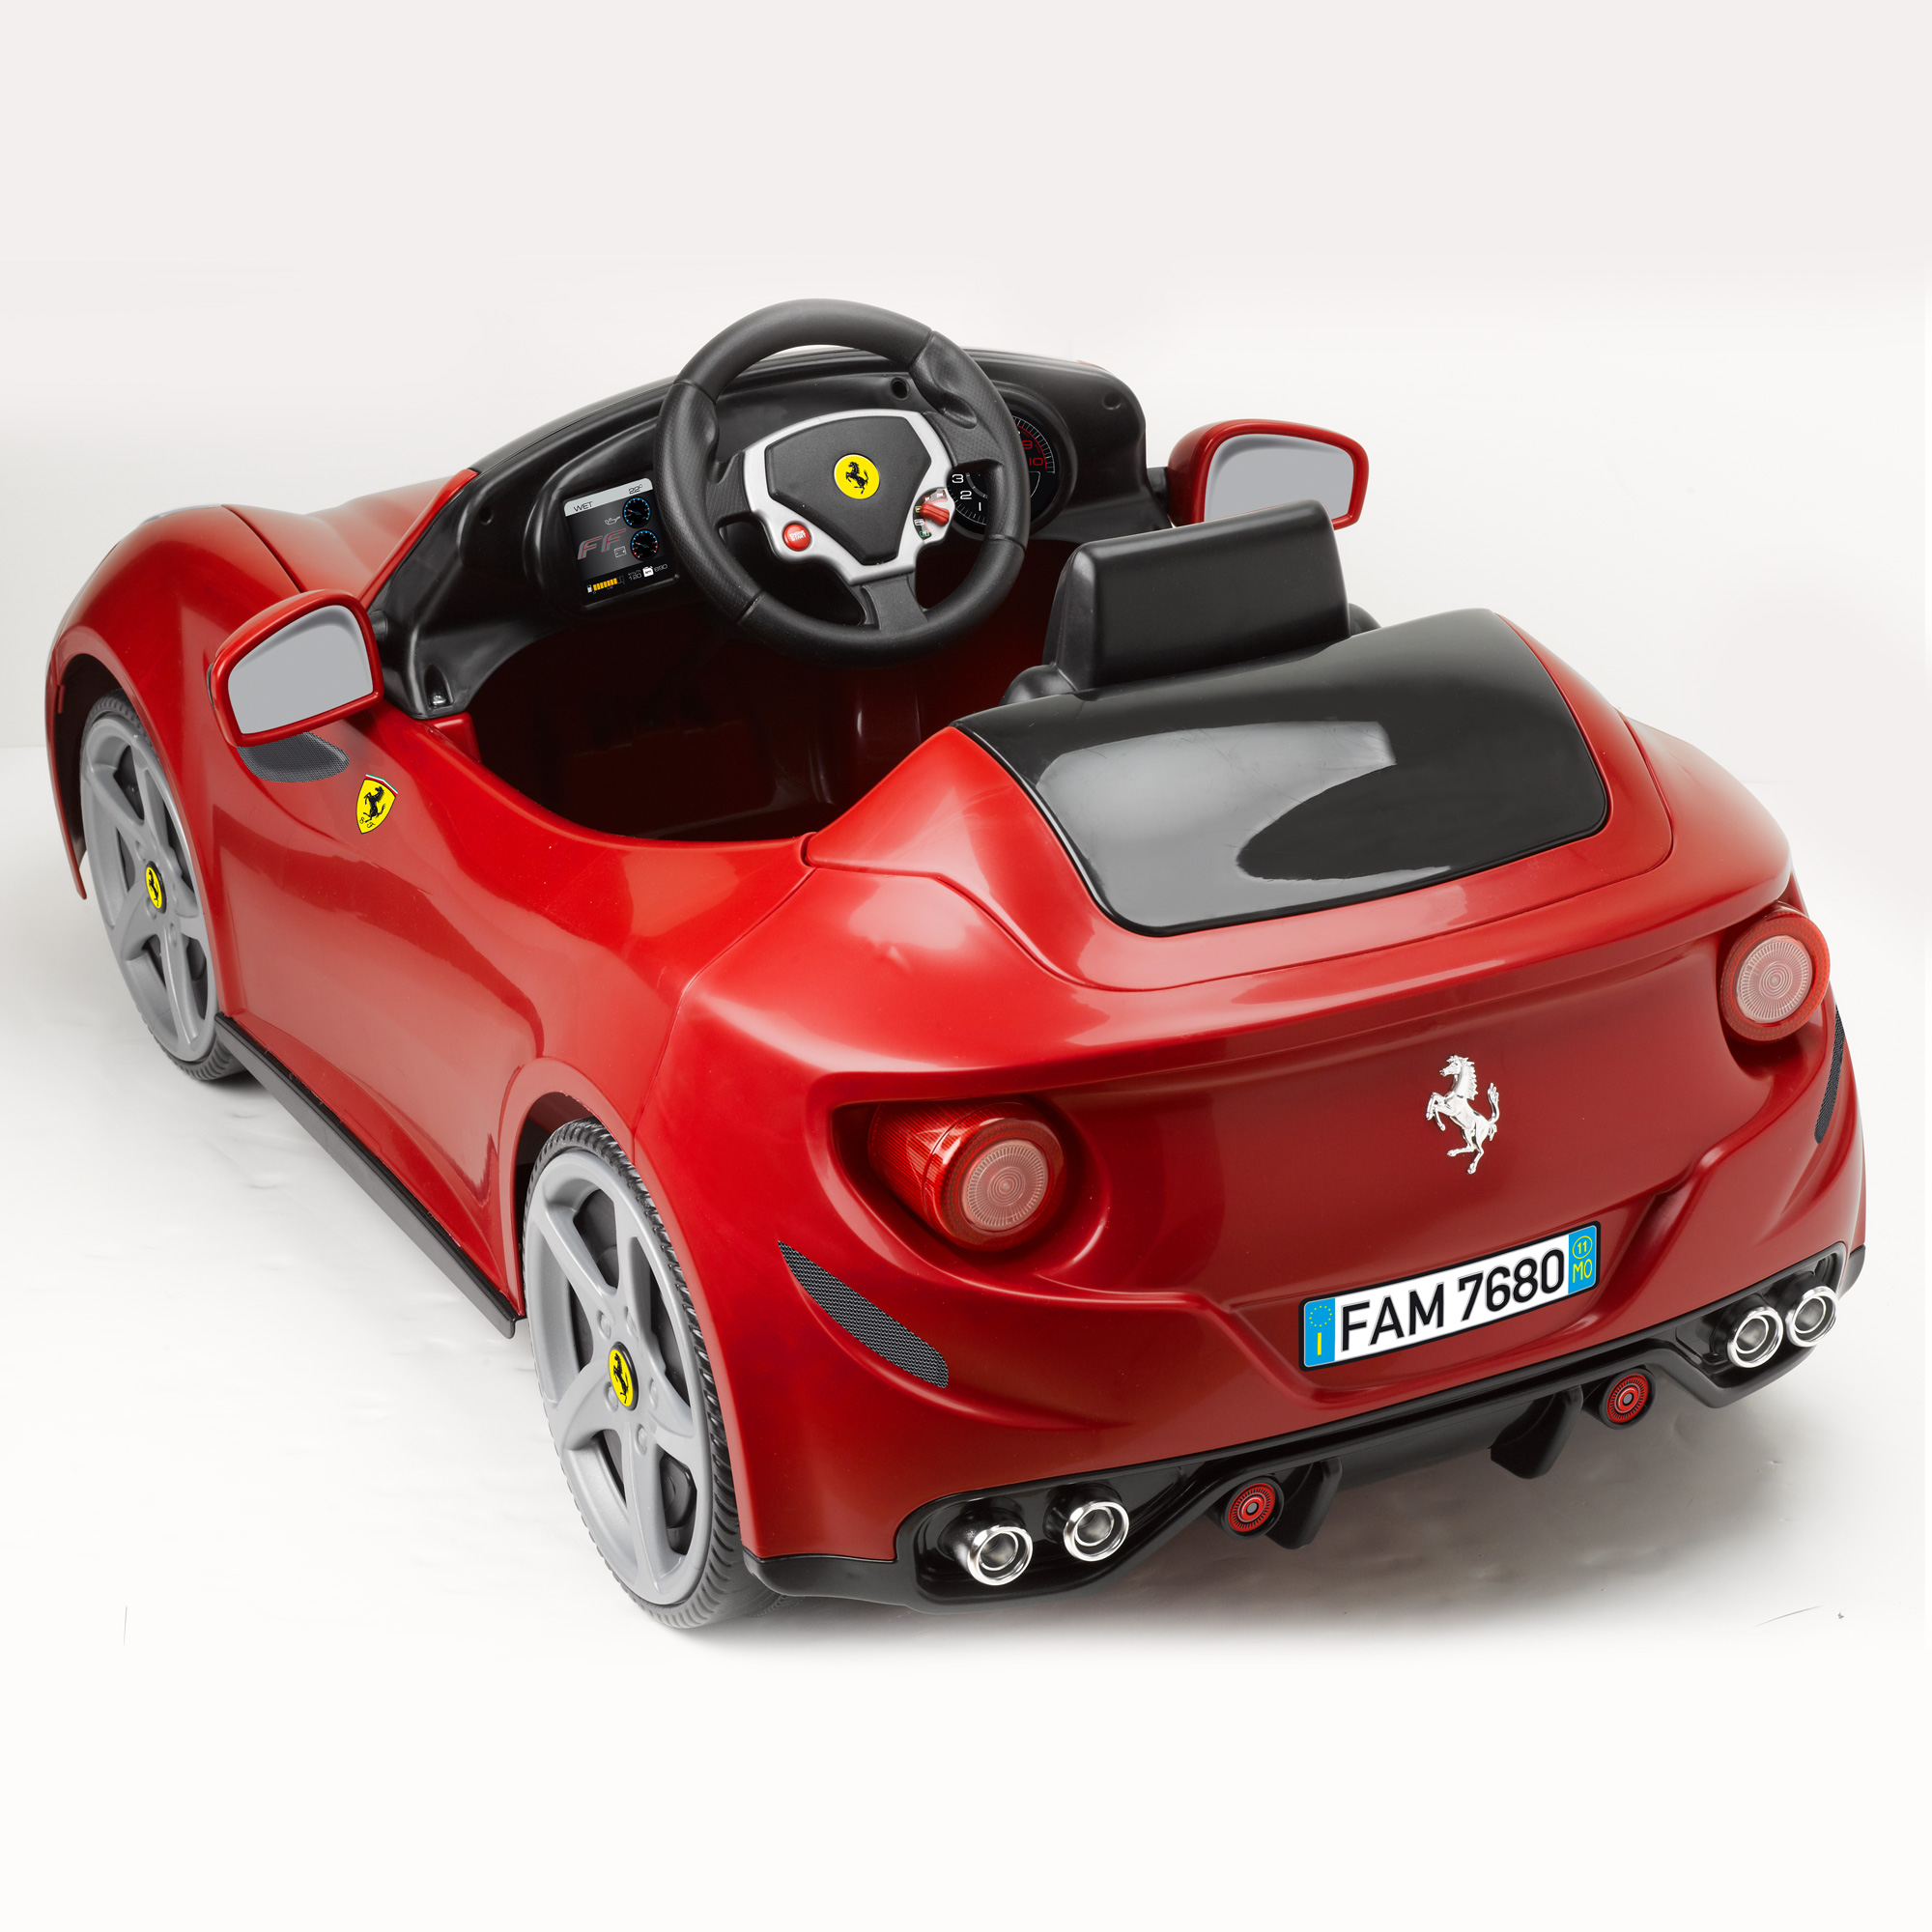 selection de noel la collection ferrari auto. Black Bedroom Furniture Sets. Home Design Ideas